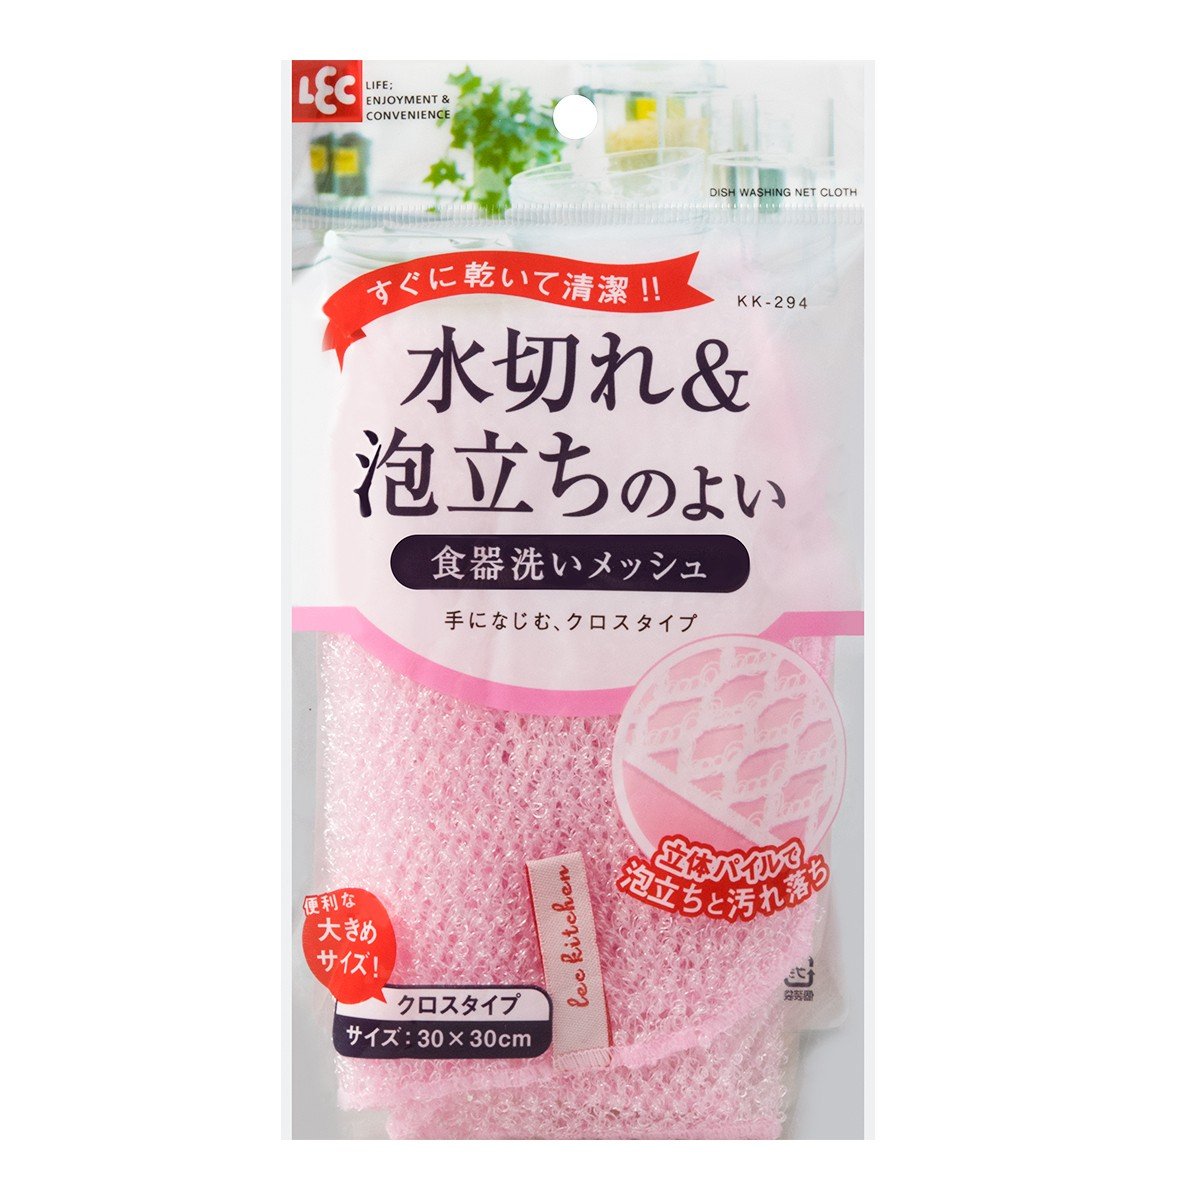 Yamibuy.com:Customer reviews:LEC Stain Removal Cleaning Mesh Dish Cleaner Cloth (No Detergent Needed) 1pc